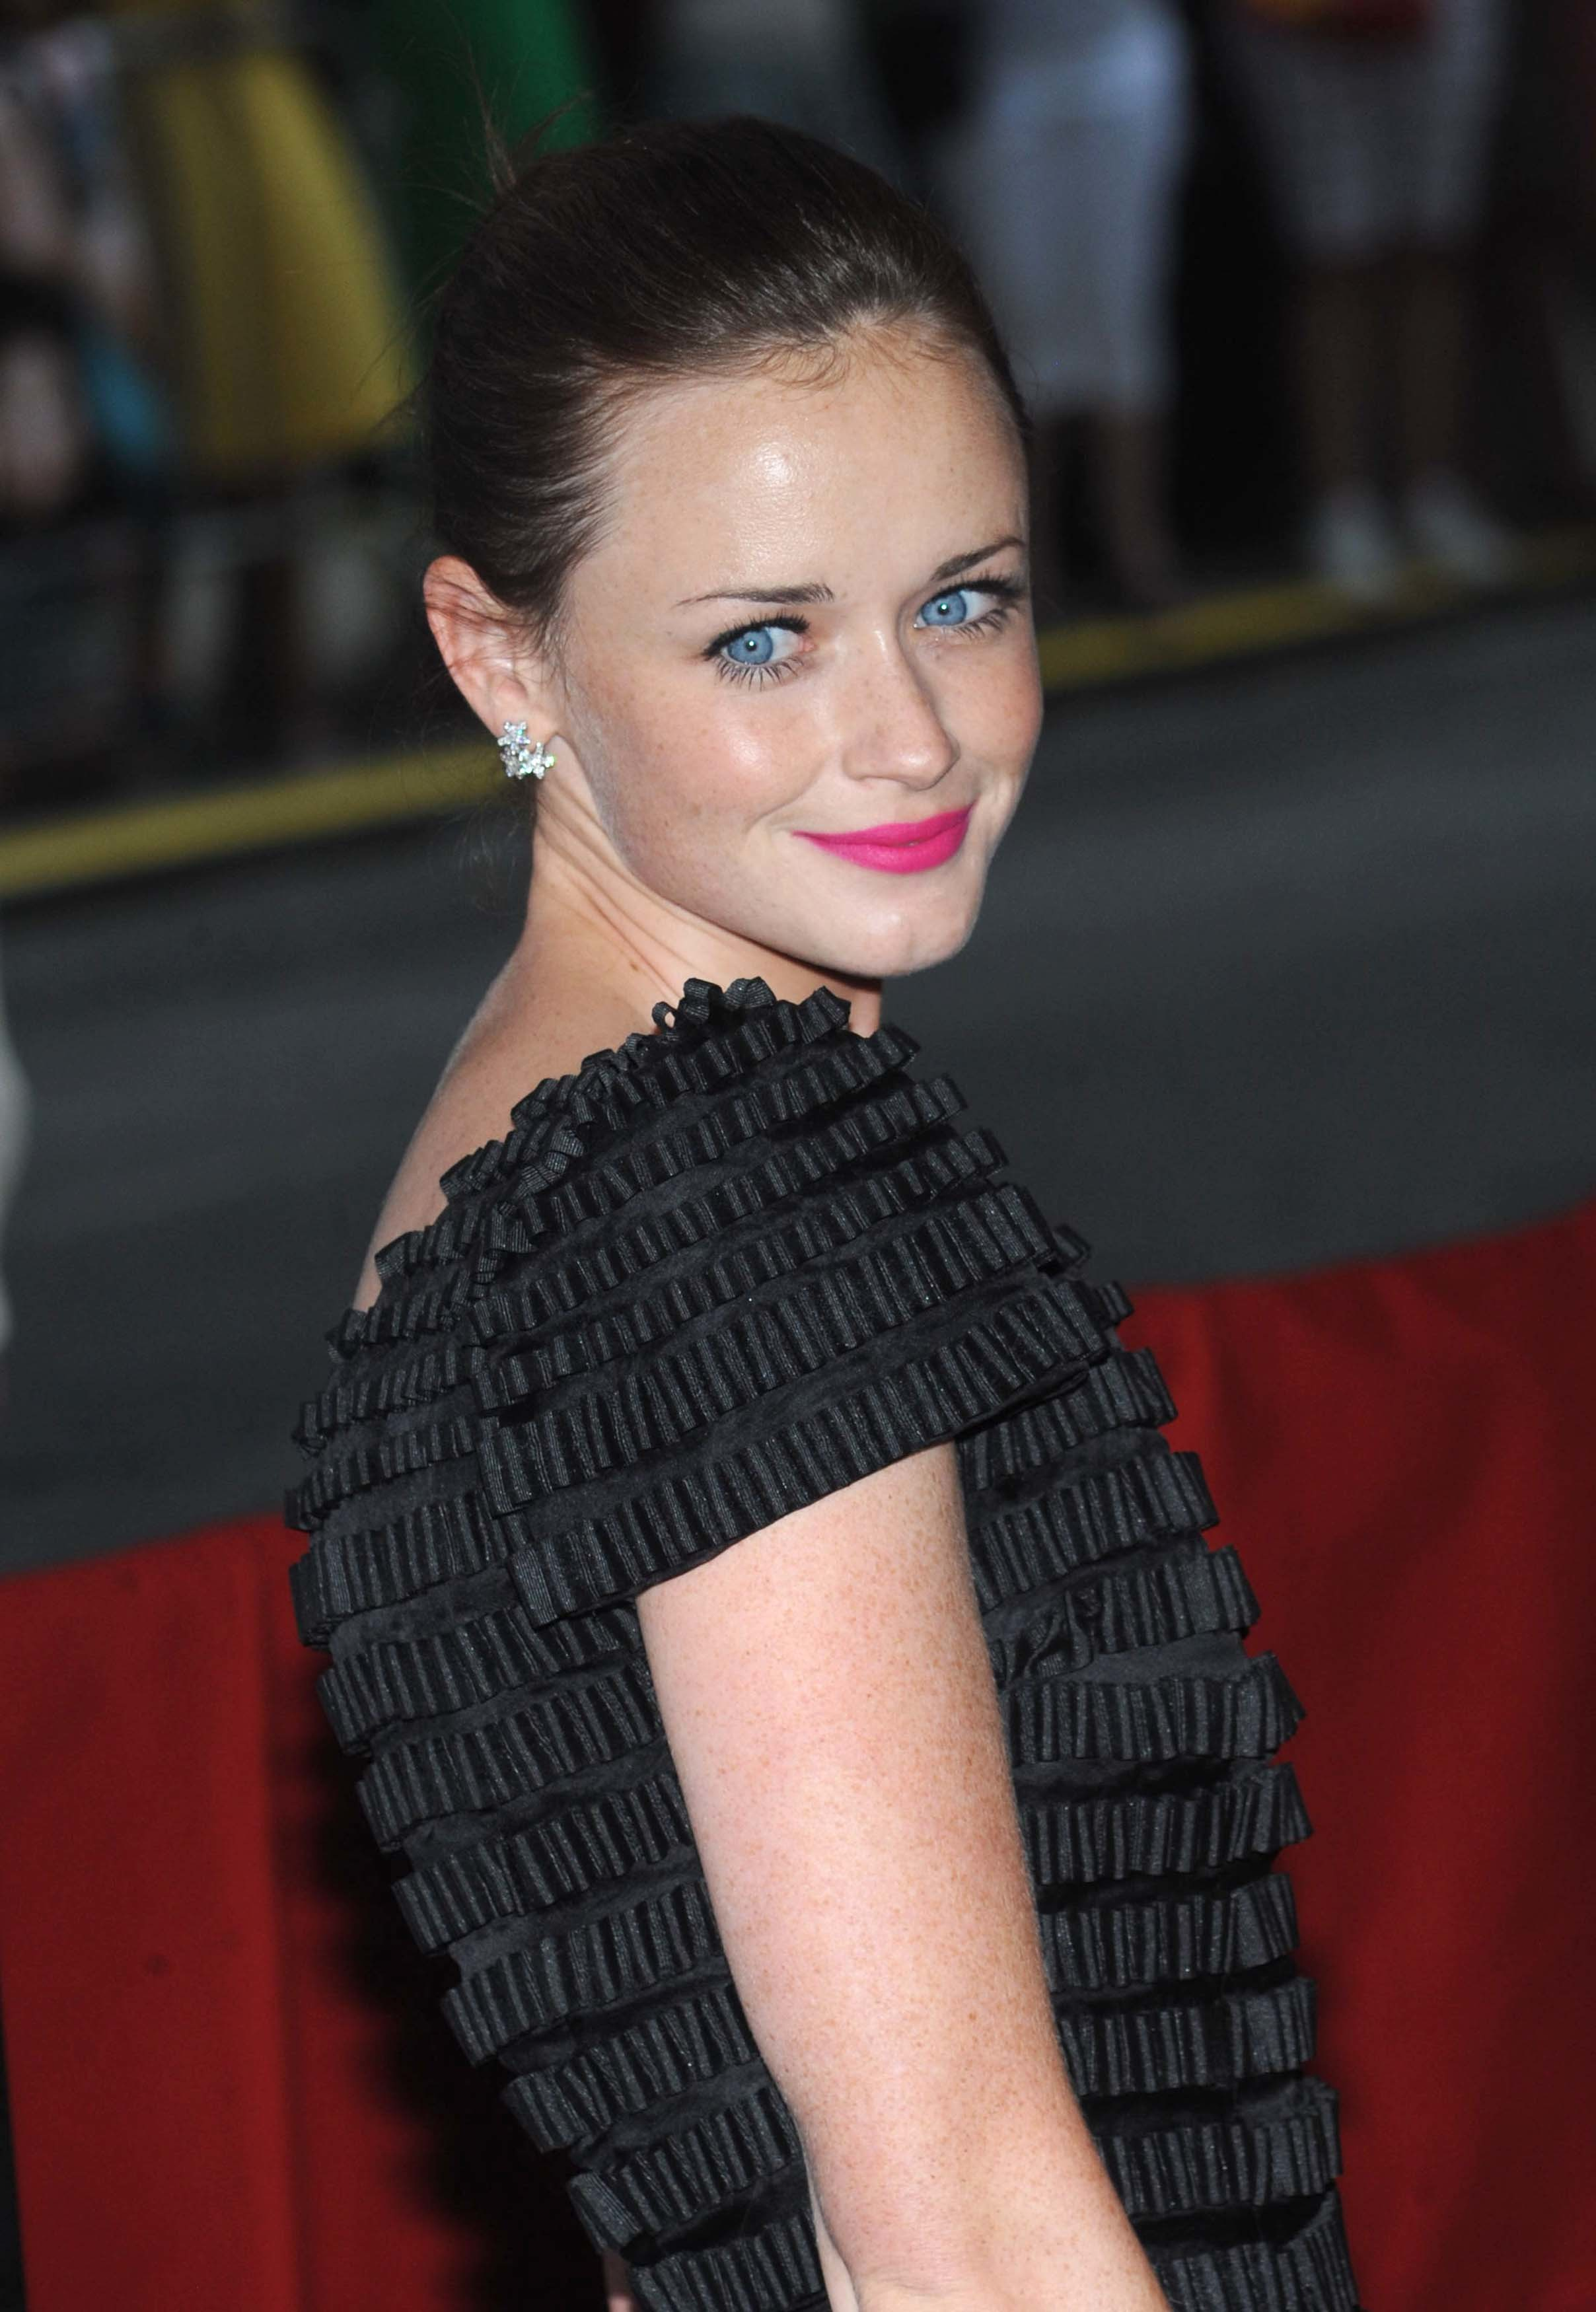 alexis bledel Celebrity HD Wallpaper